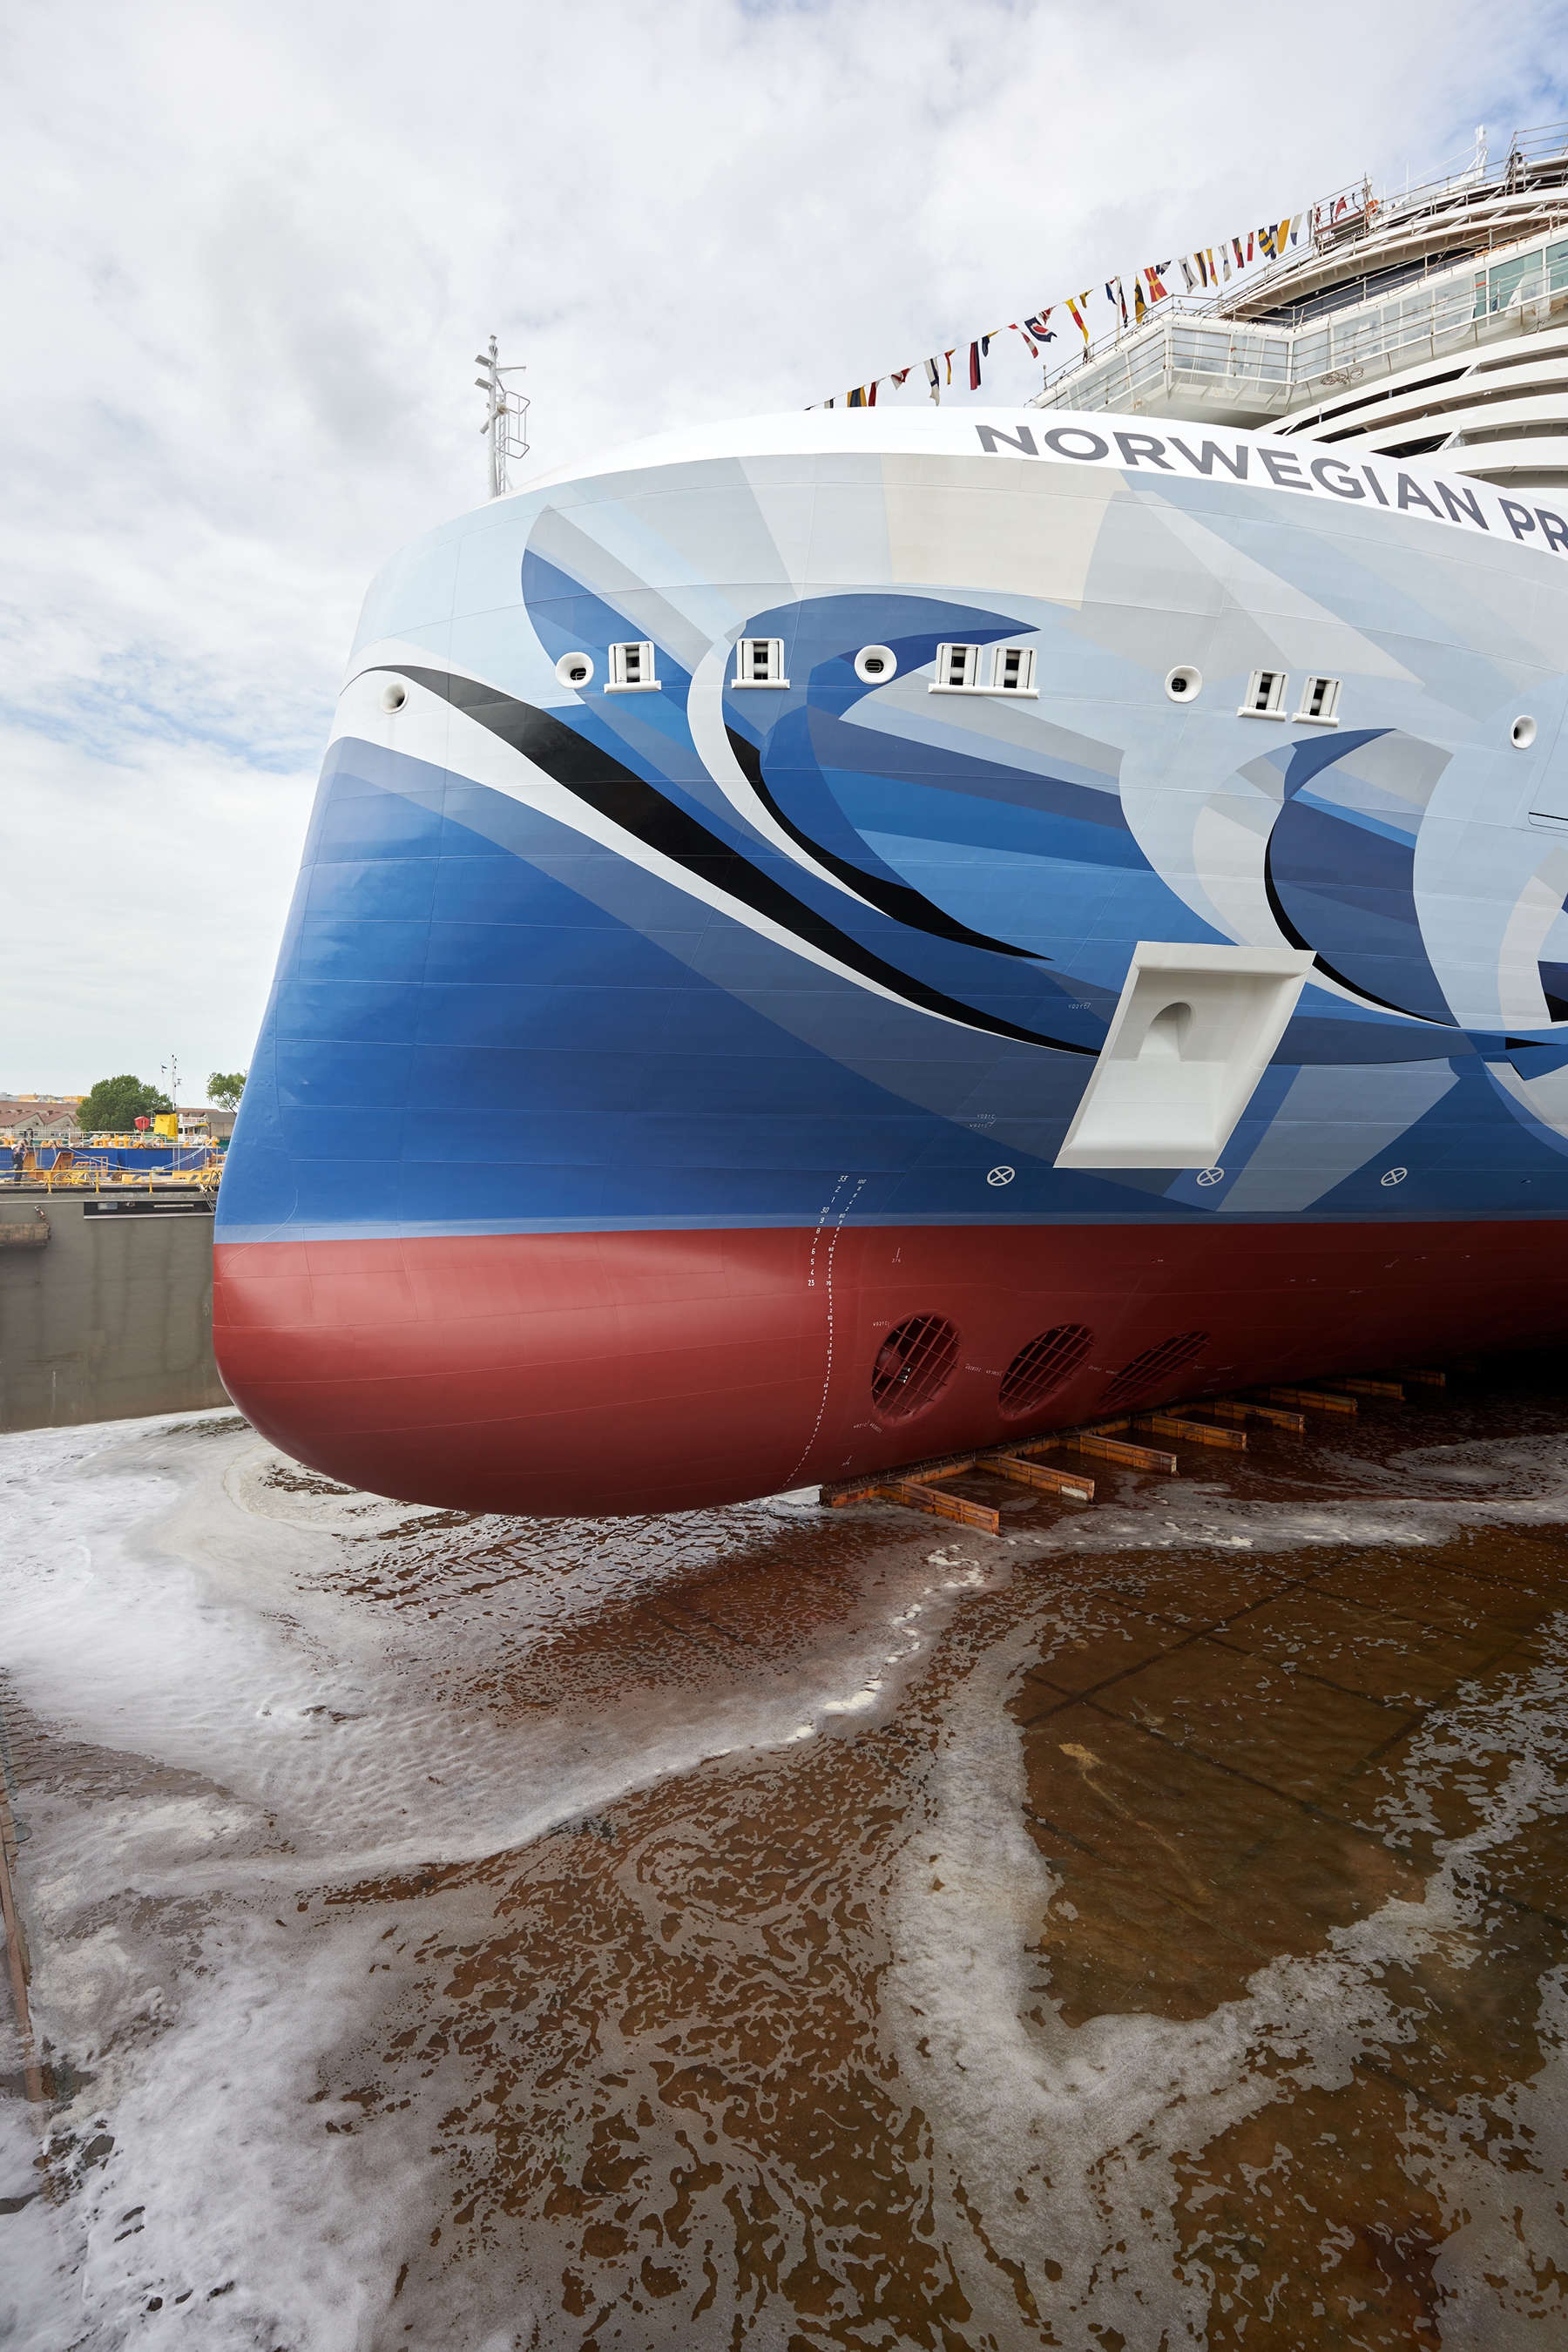 NCL's ground-breaking new ship Norwegian Prima completes major construction milestone at the Fincantieri shipyard in Marghera, Italy, on Aug. 11, 2021, floating into the water for the very first time. Photo by © Filippo Vinardi